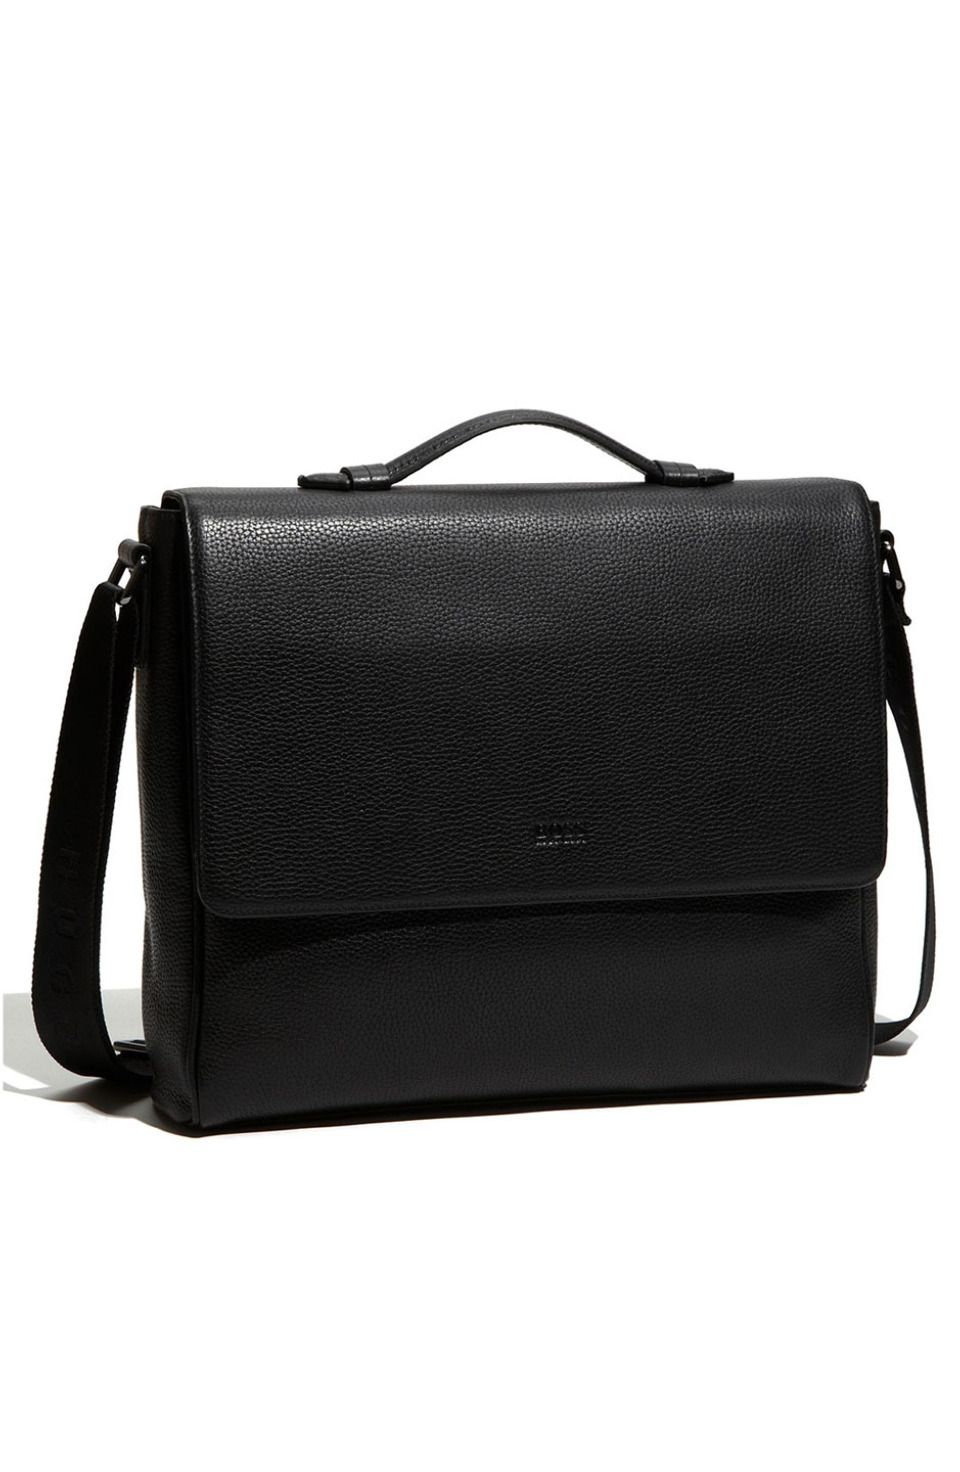 51361b556ca2 Bangor 2 Leather Messenger Bag Hugo Boss is for the self-confident man who  wants